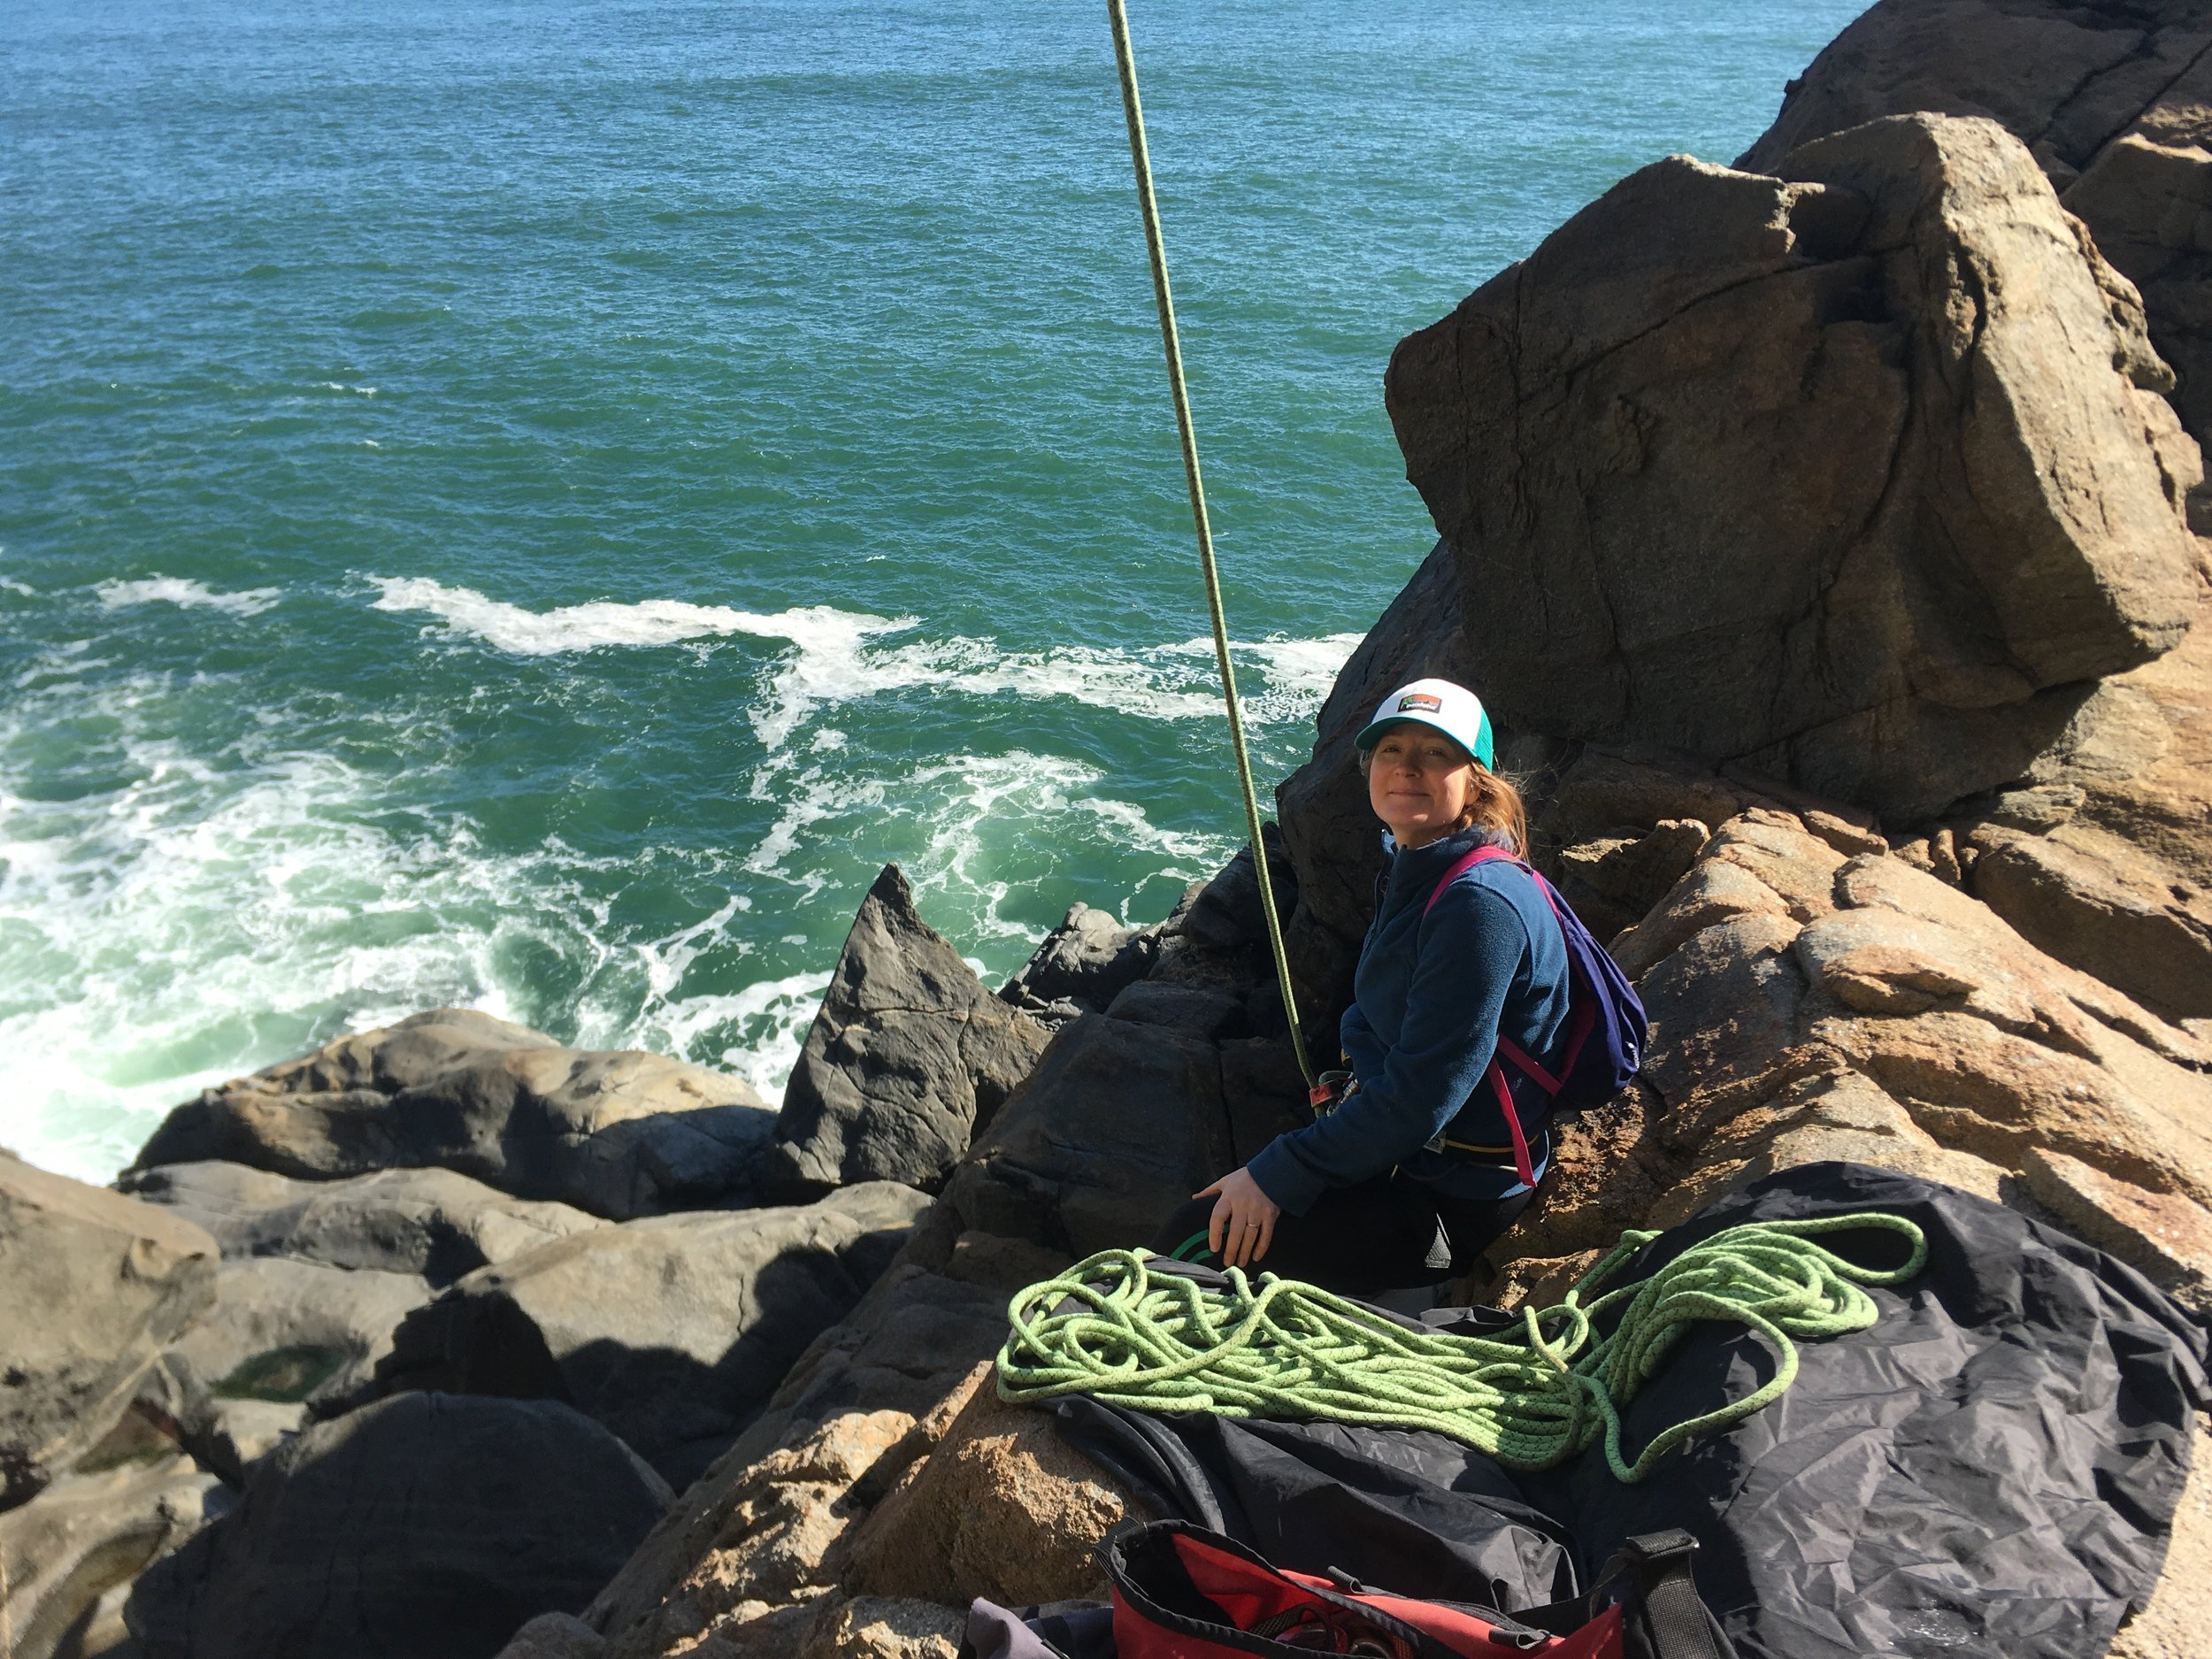 Emily belaying cliffside